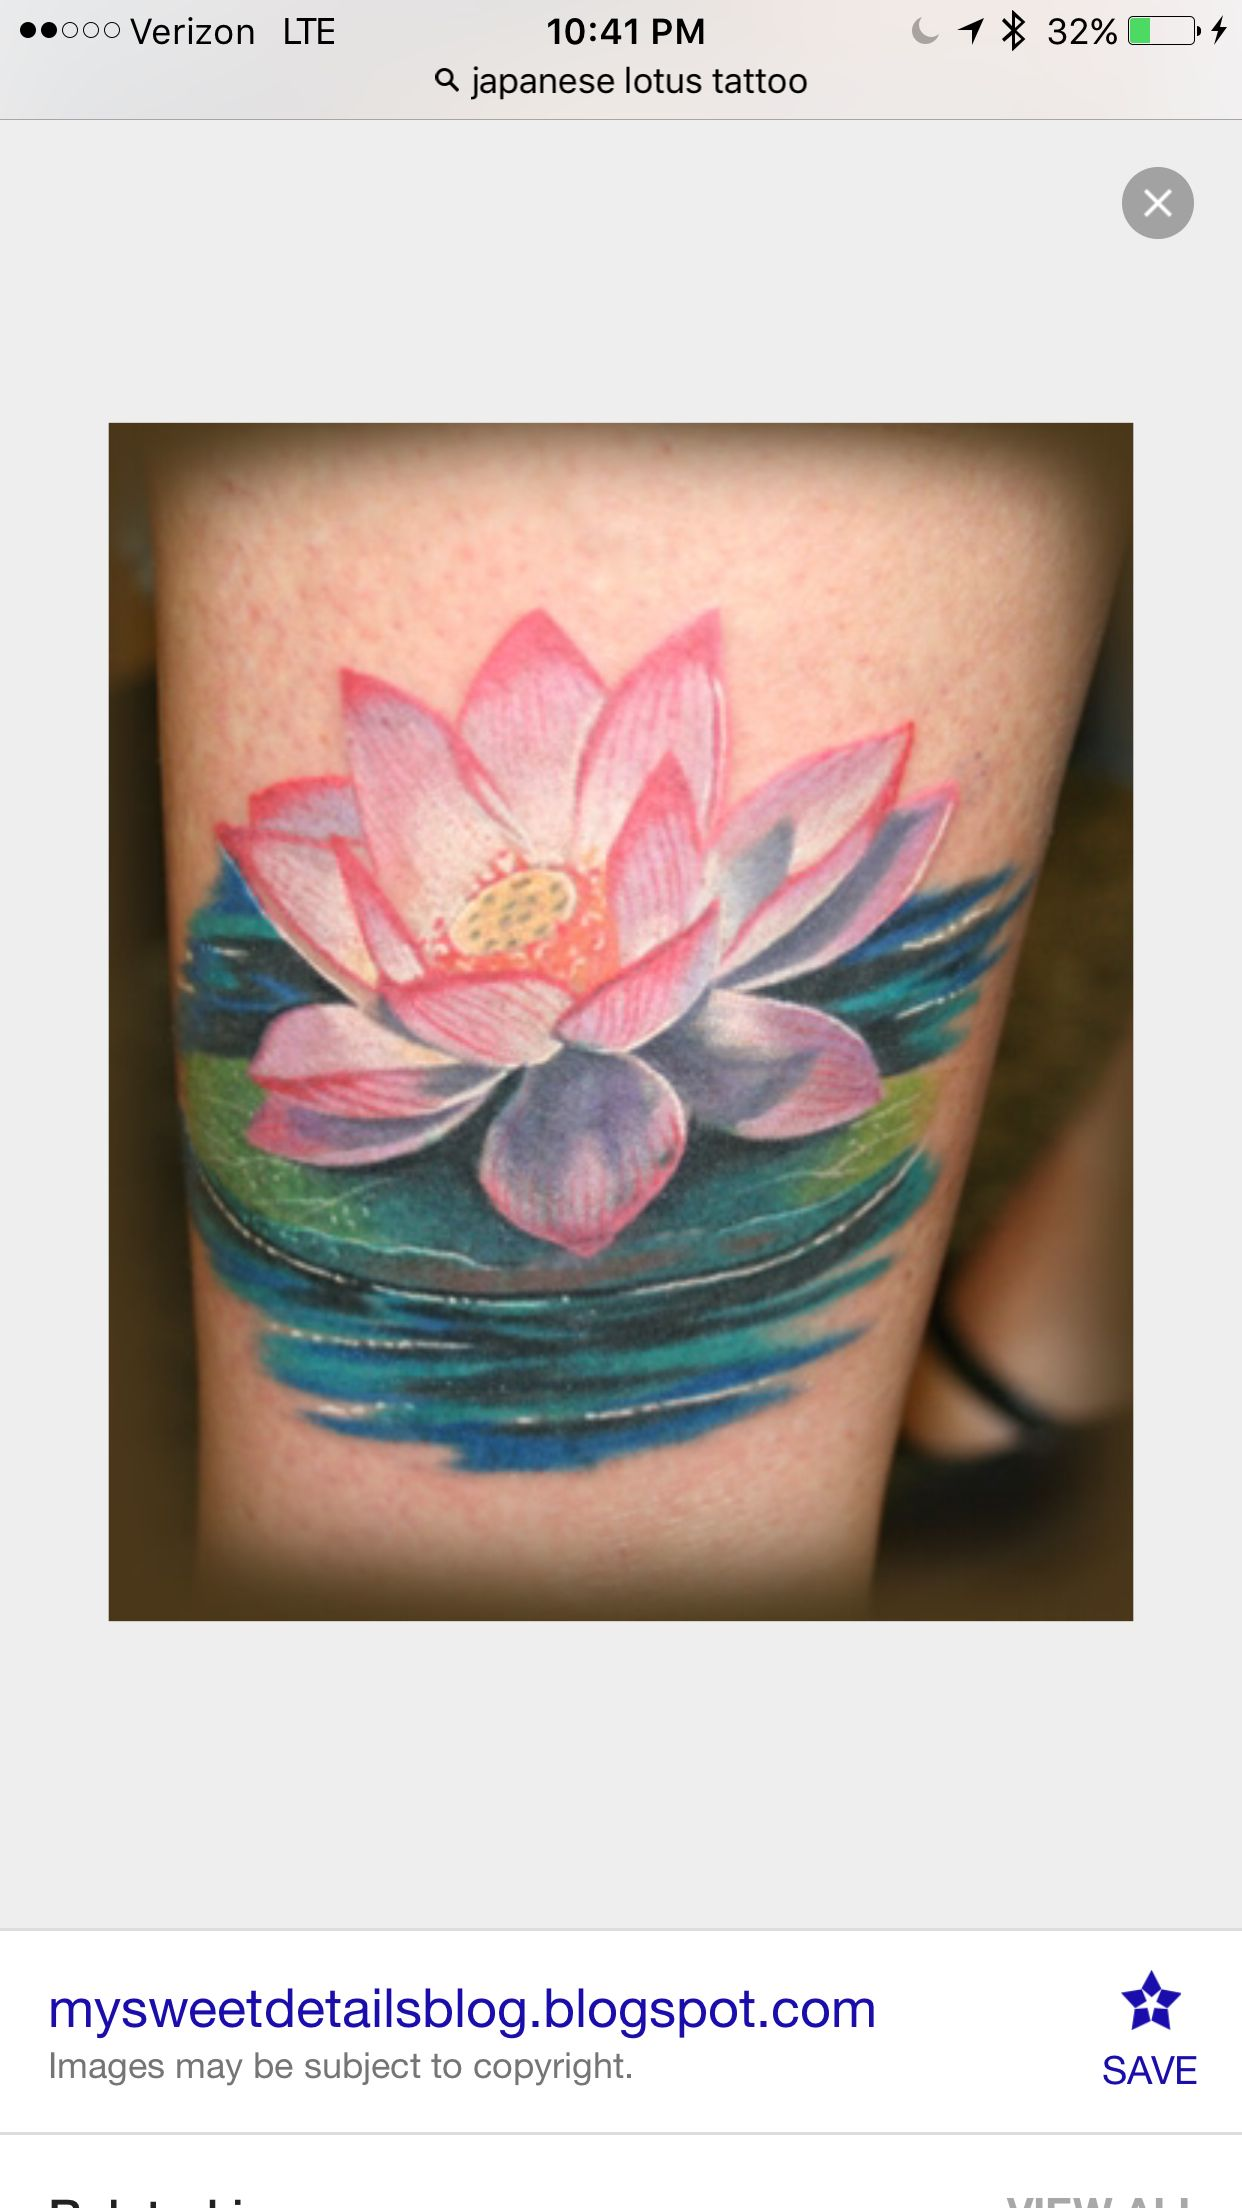 Lotus tattoo tattoos i want pinterest tattoos lotus tattoo lotus tattoo blossom tattoo pink lotus tattoo lotus flower tattoo design flower tattoos izmirmasajfo